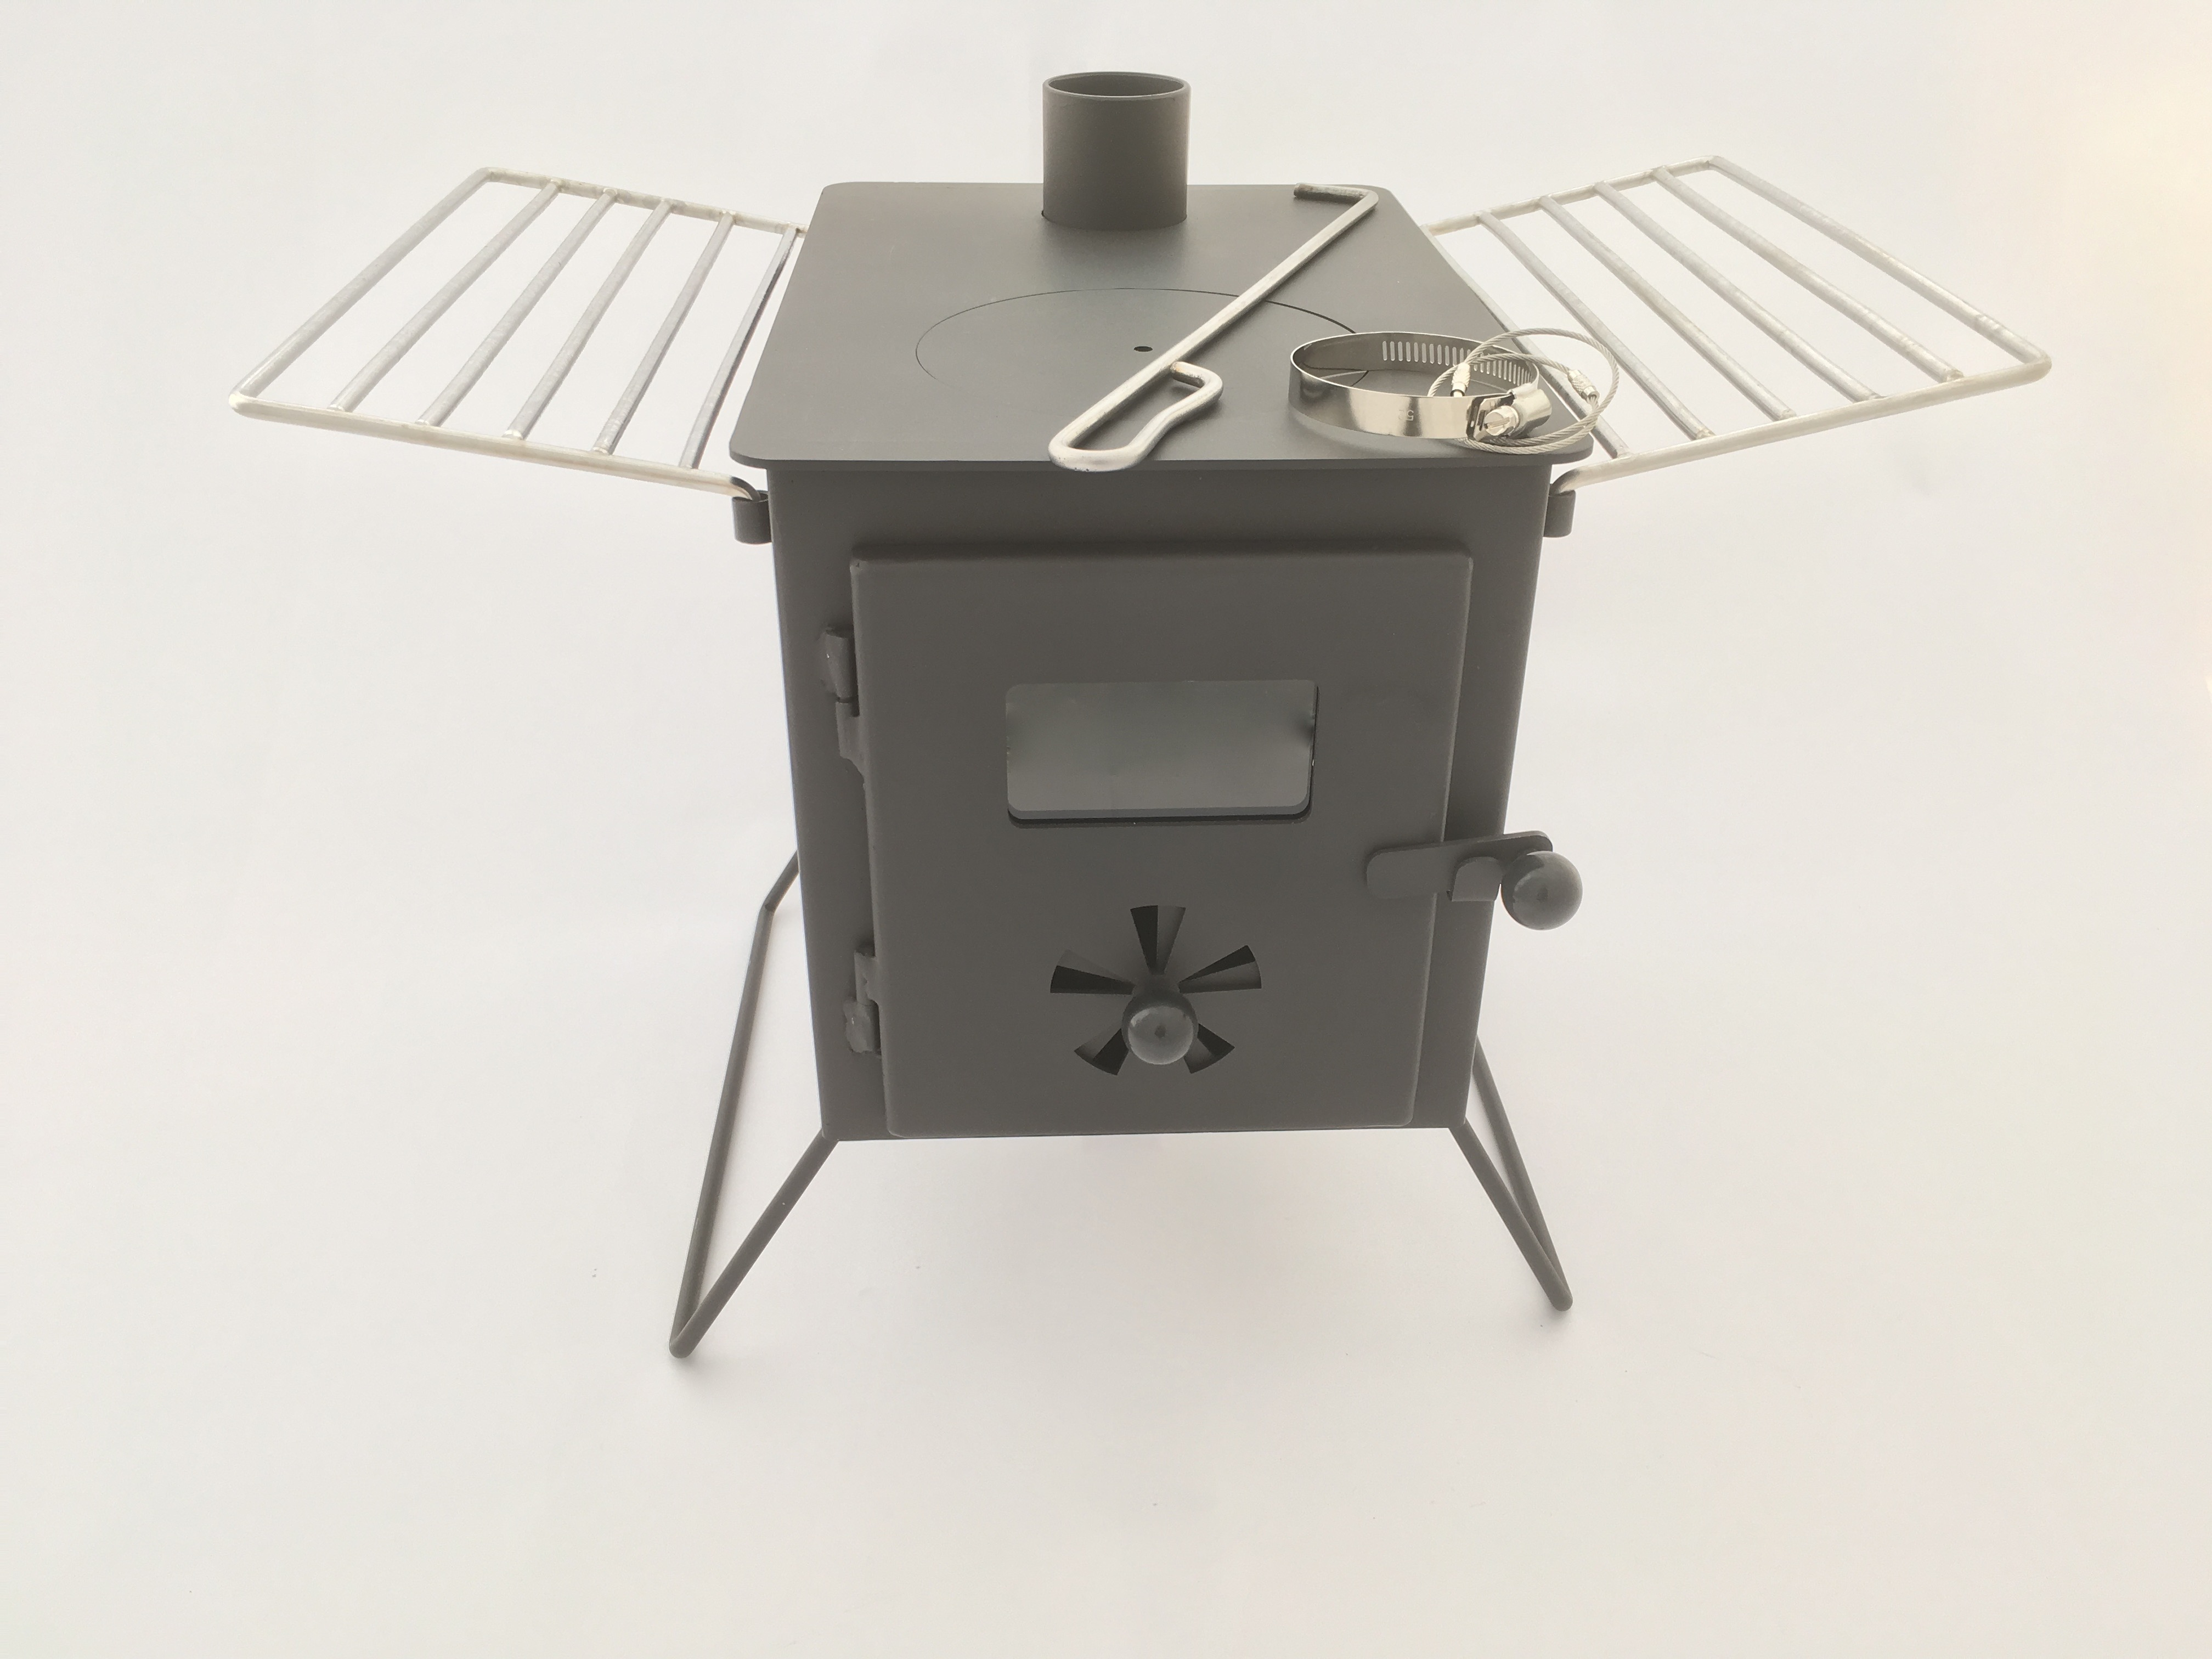 Nomad Stove With Roof Exit Flue Karma Canvas